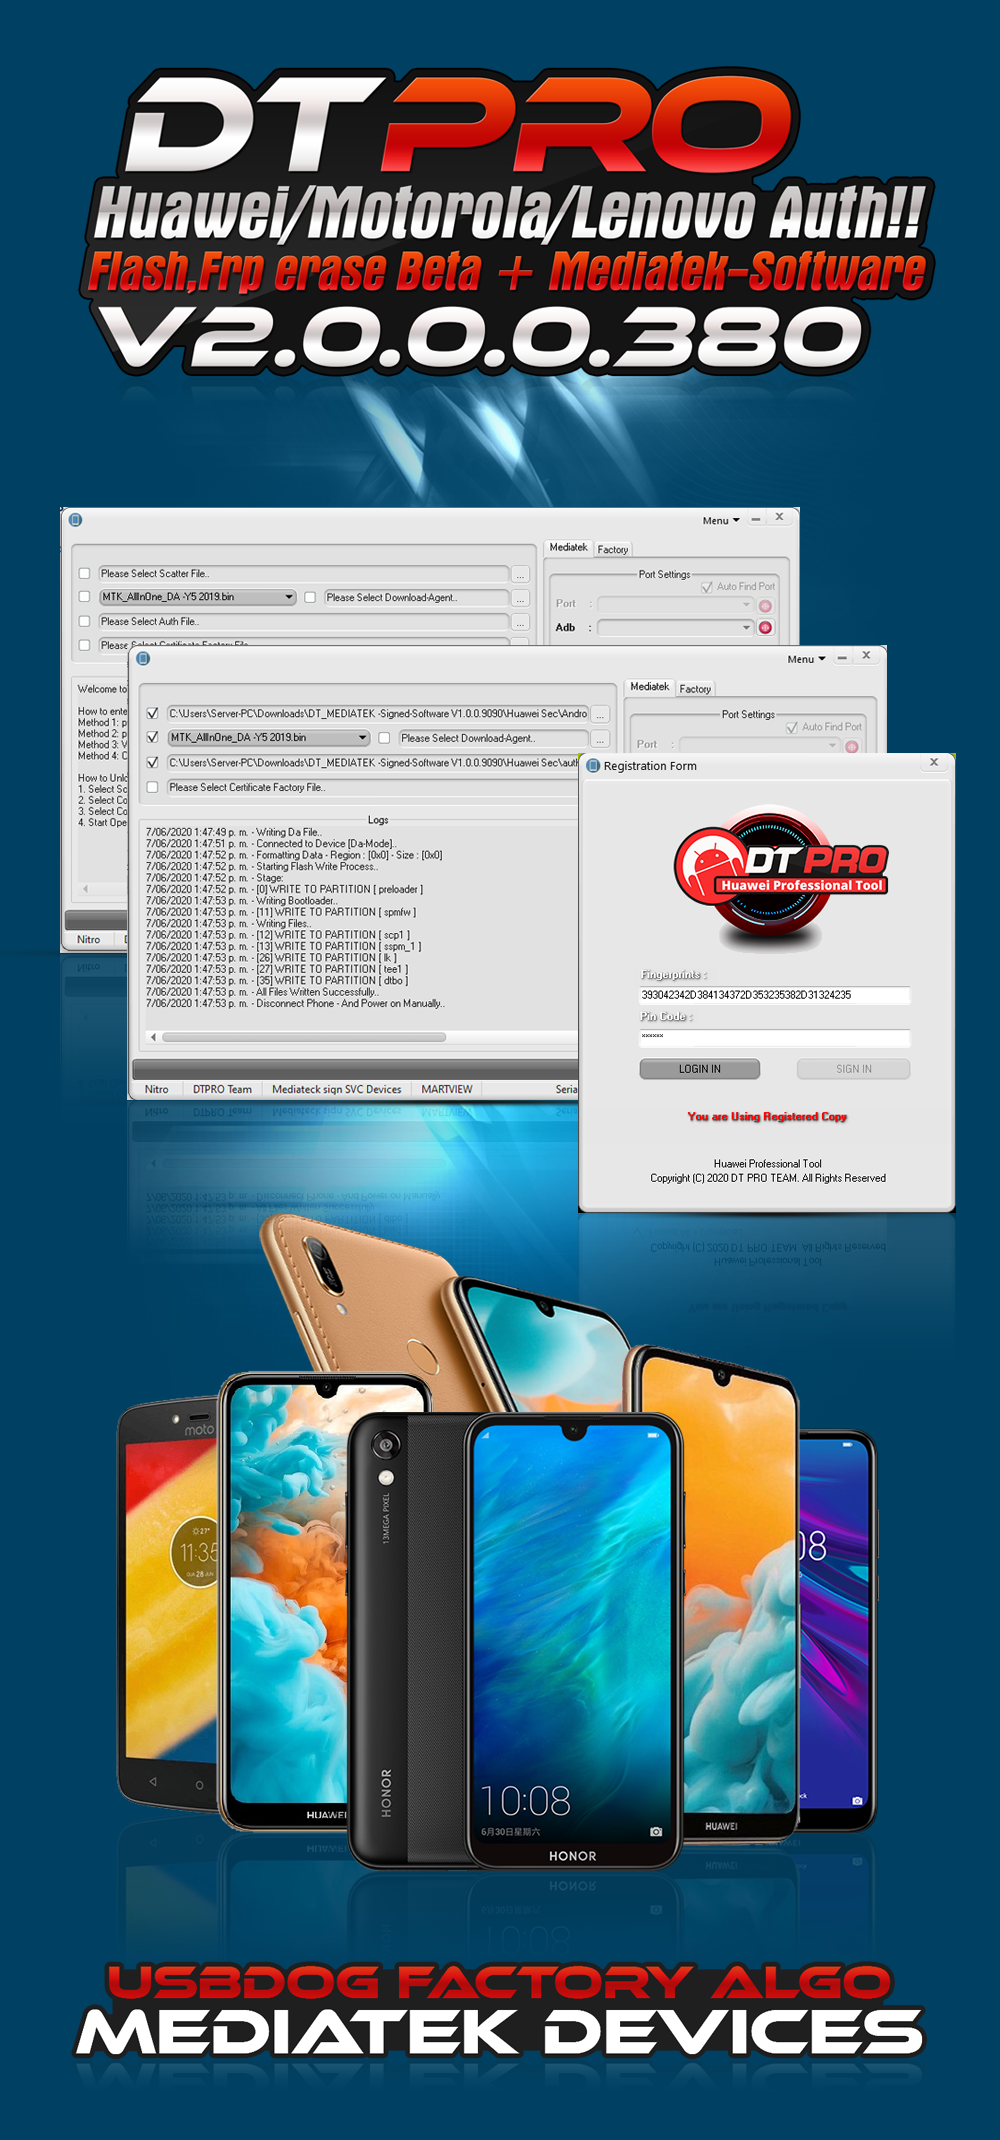 DT MTK -eMMC Software V2.0.0.0.380 Motorola, Huawei, lenovo and More Unique & World First